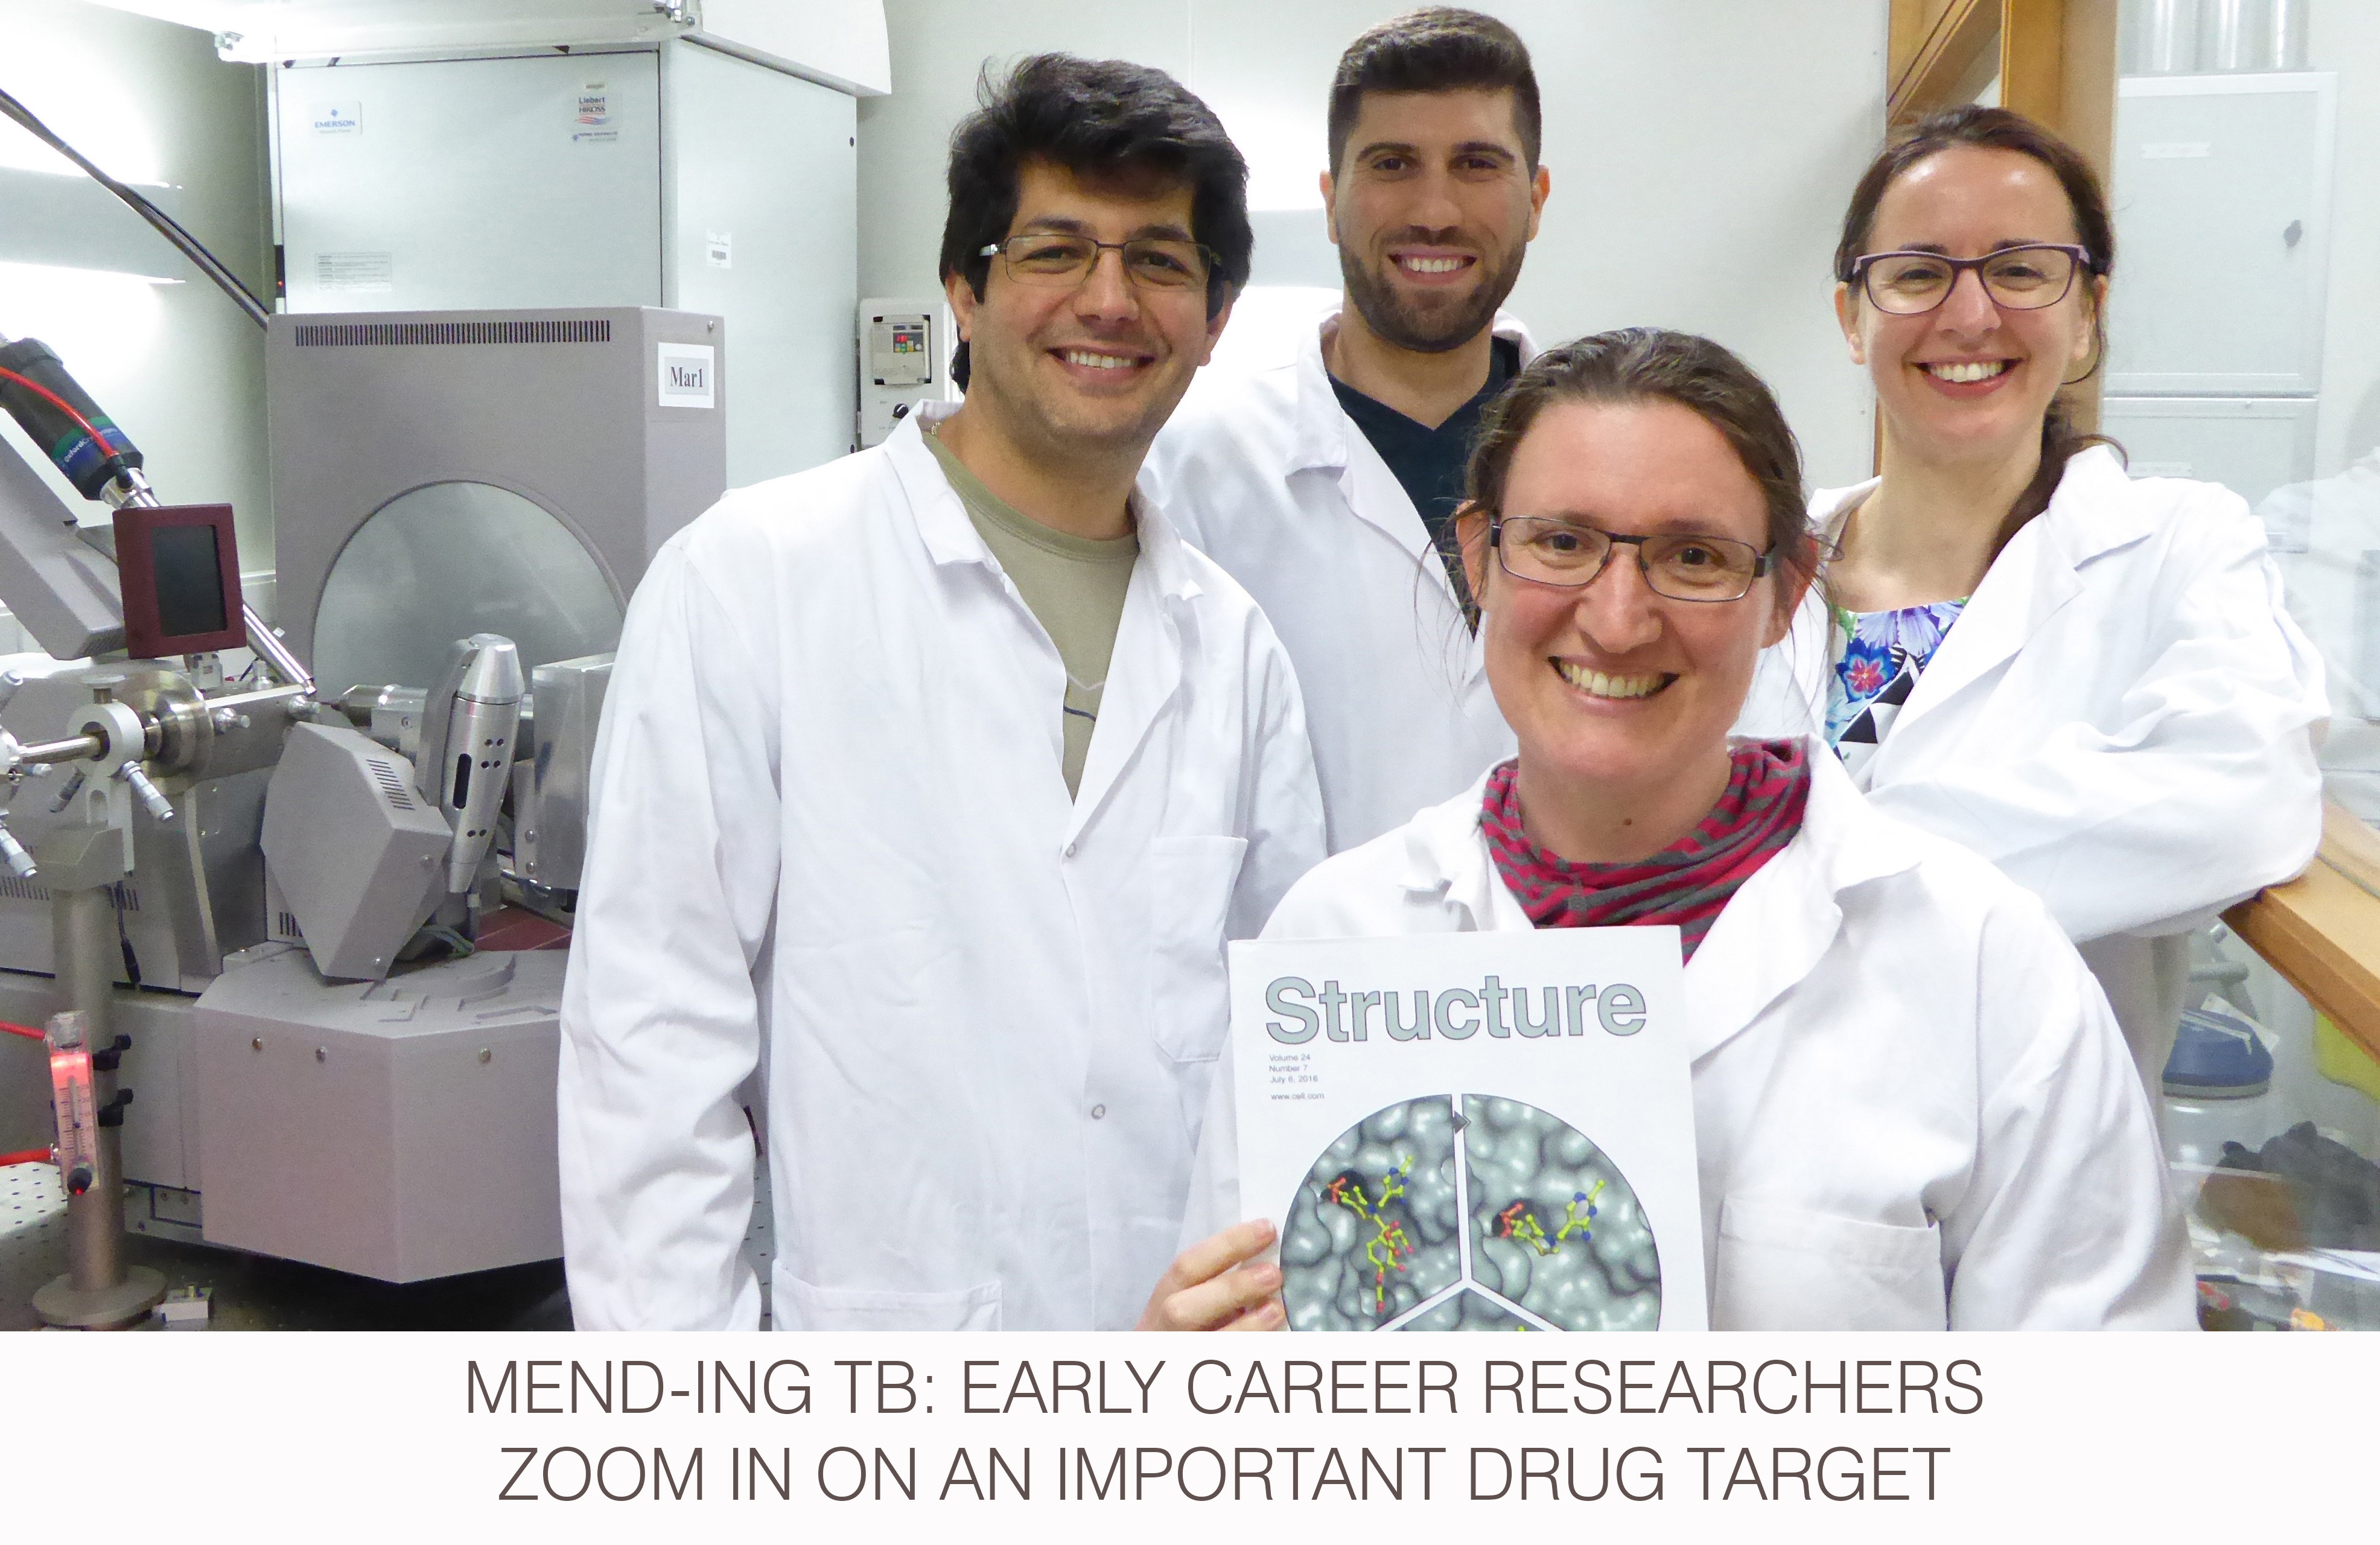 MenD-ing TB: early career researchers zoom in on an important drug target